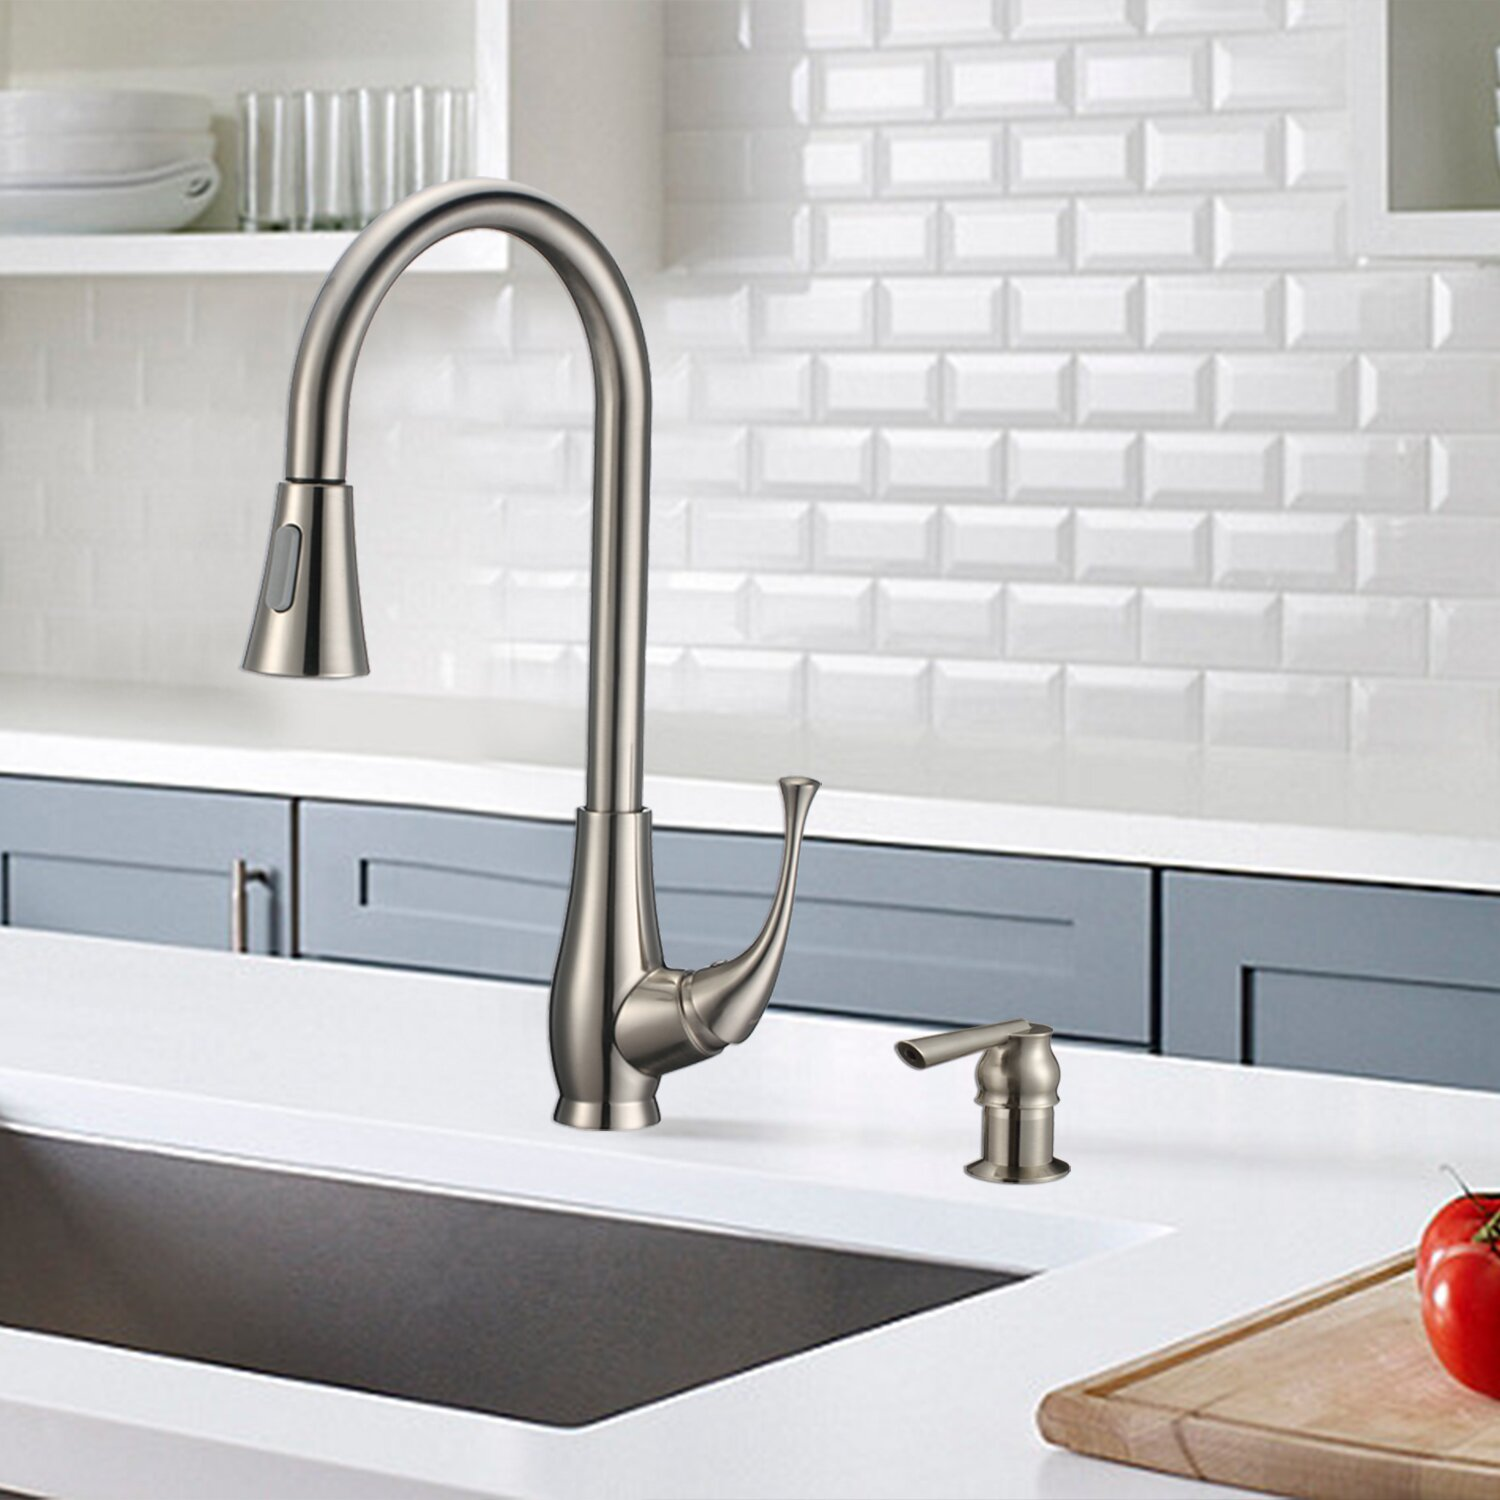 upscale designs by ema single handle kitchen faucet with upscale designs by ema single handle deck mounted kitchen